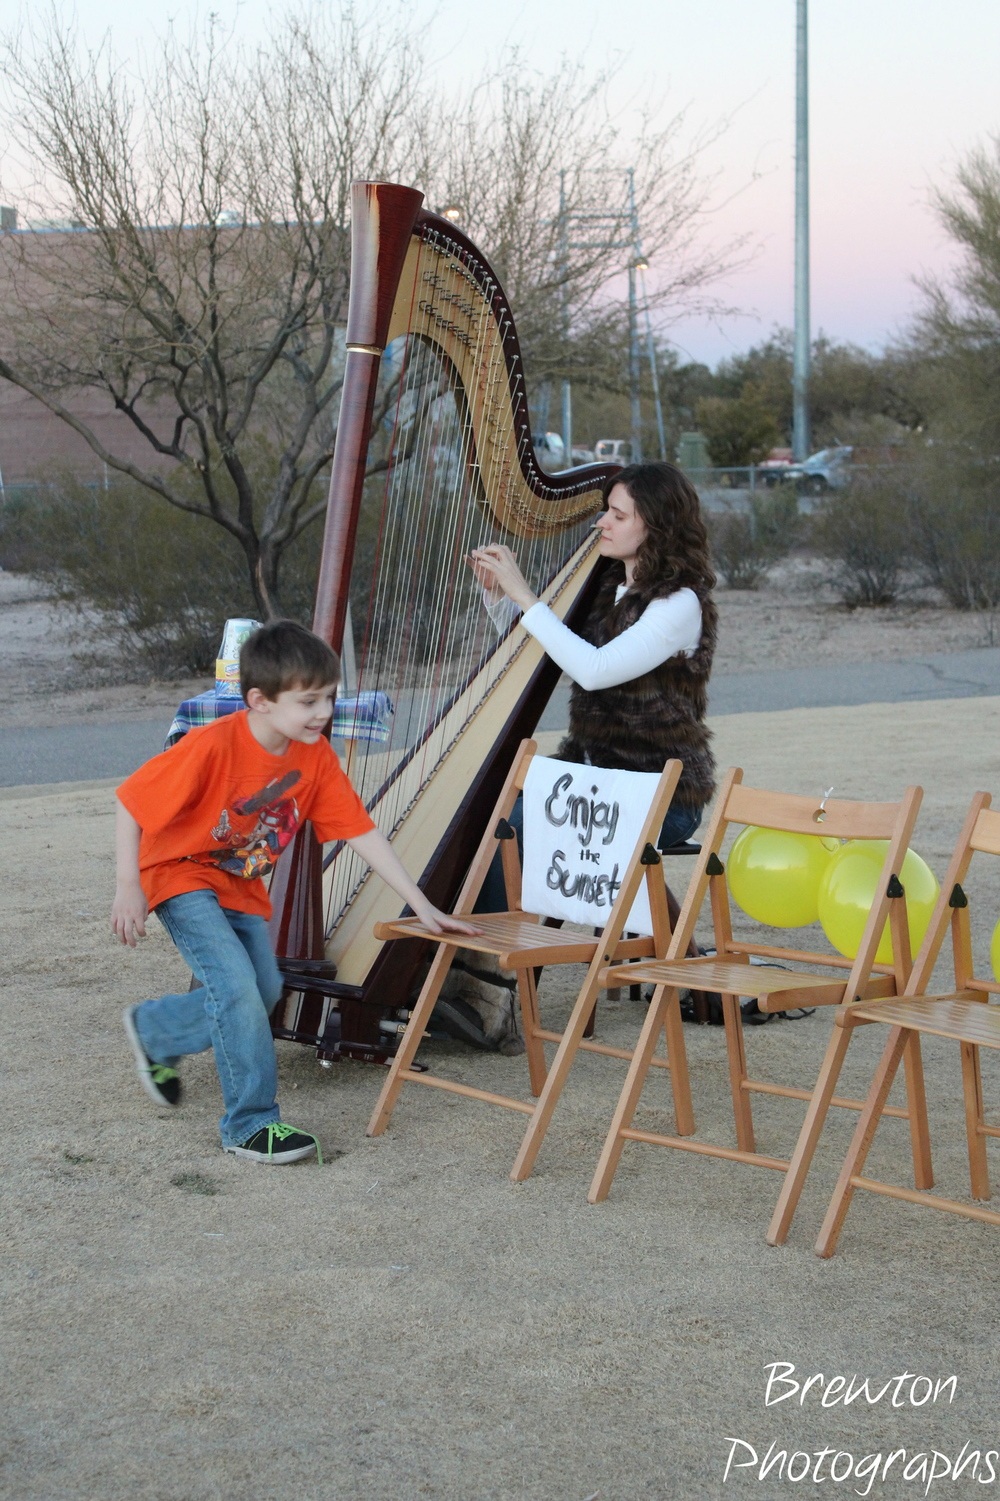 My Camac Atlantide Electric Pedal Harp. I love its bold sound and my access to chromatic music this harp gives me.